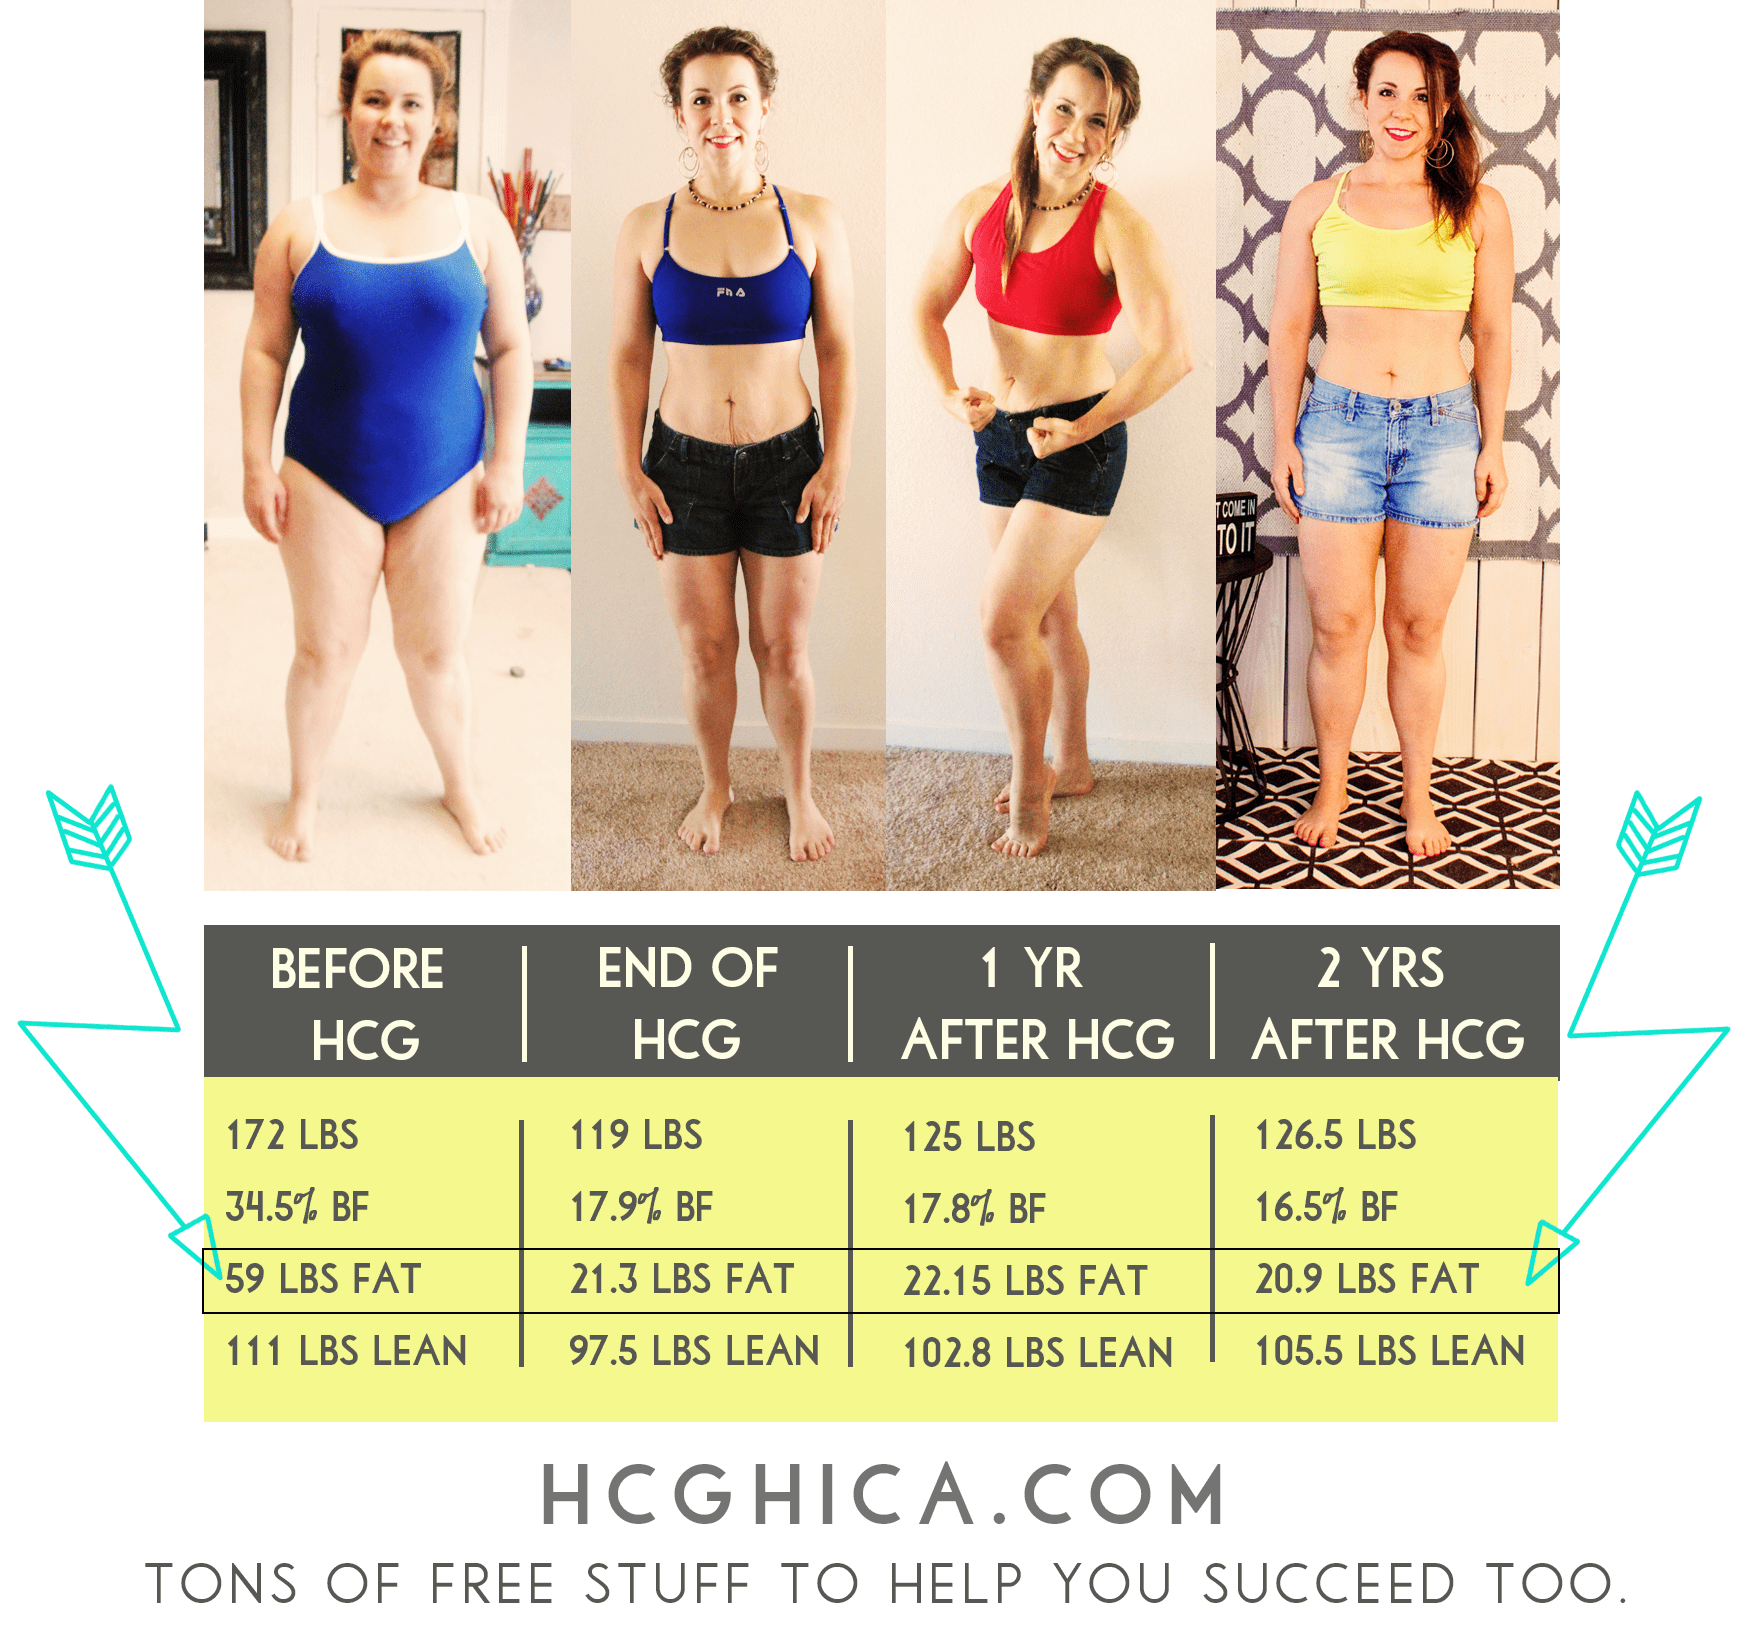 My Weight Loss Results with the hCG Diet Protocol - and Maintaining 2 Years Later - hcgchica.com